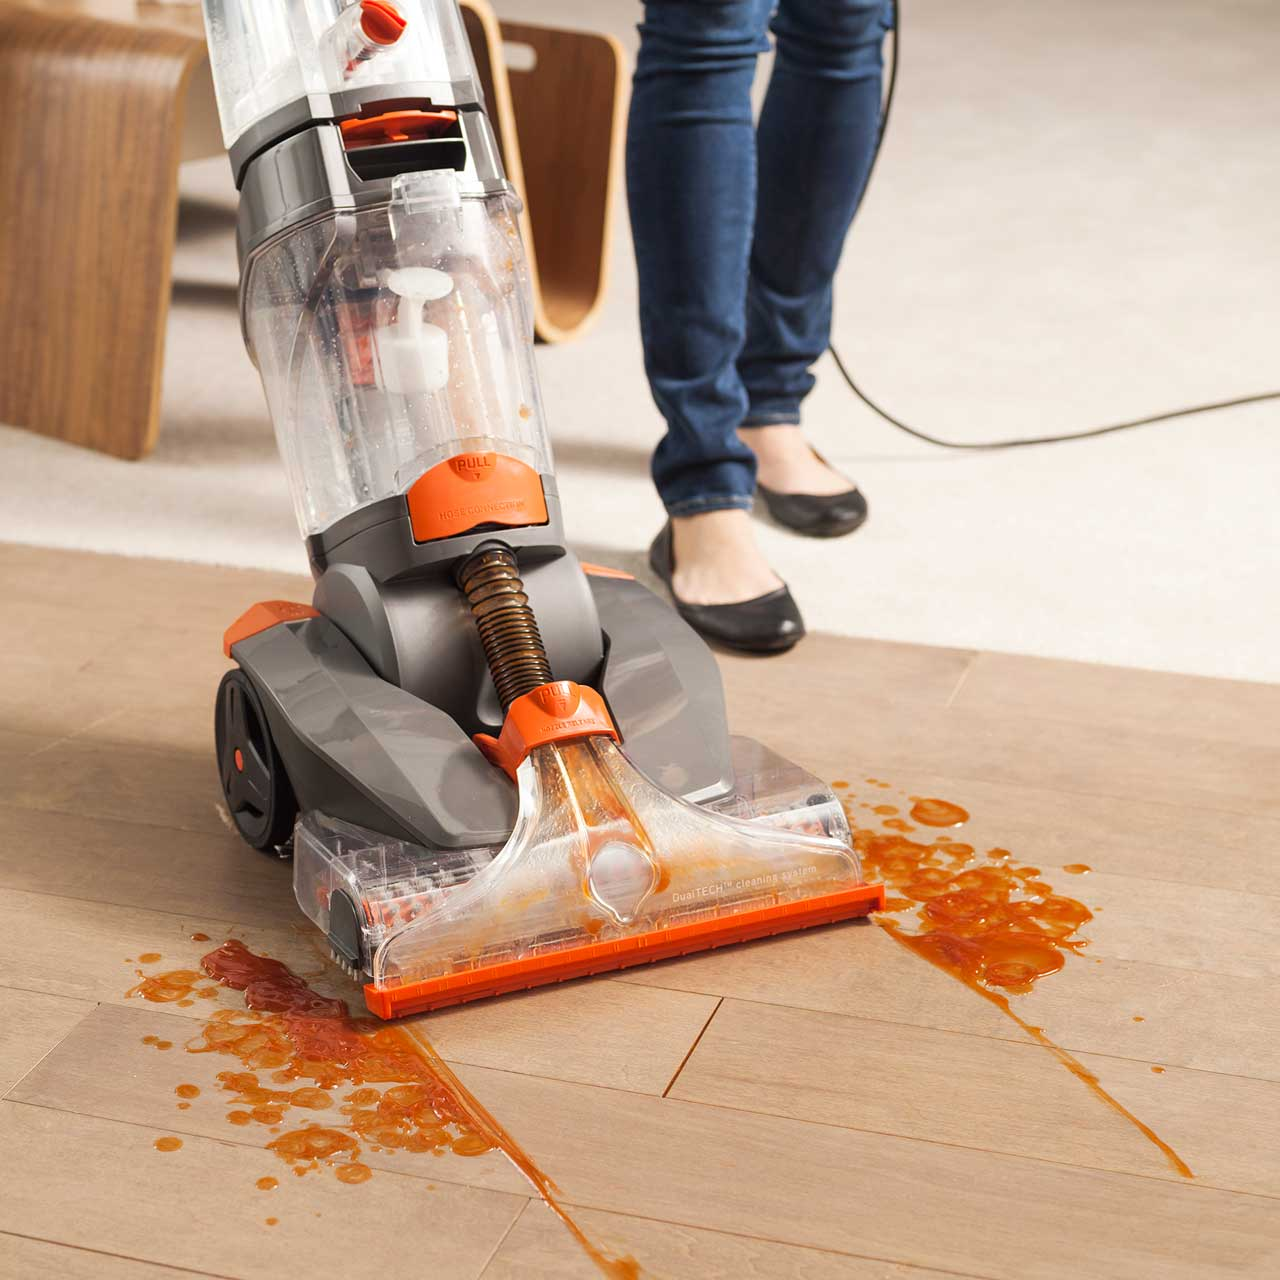 Vax S5 Kitchen And Bathroom Master Compact Steam Cleaner: Vax Handheld Carpet Cleaner